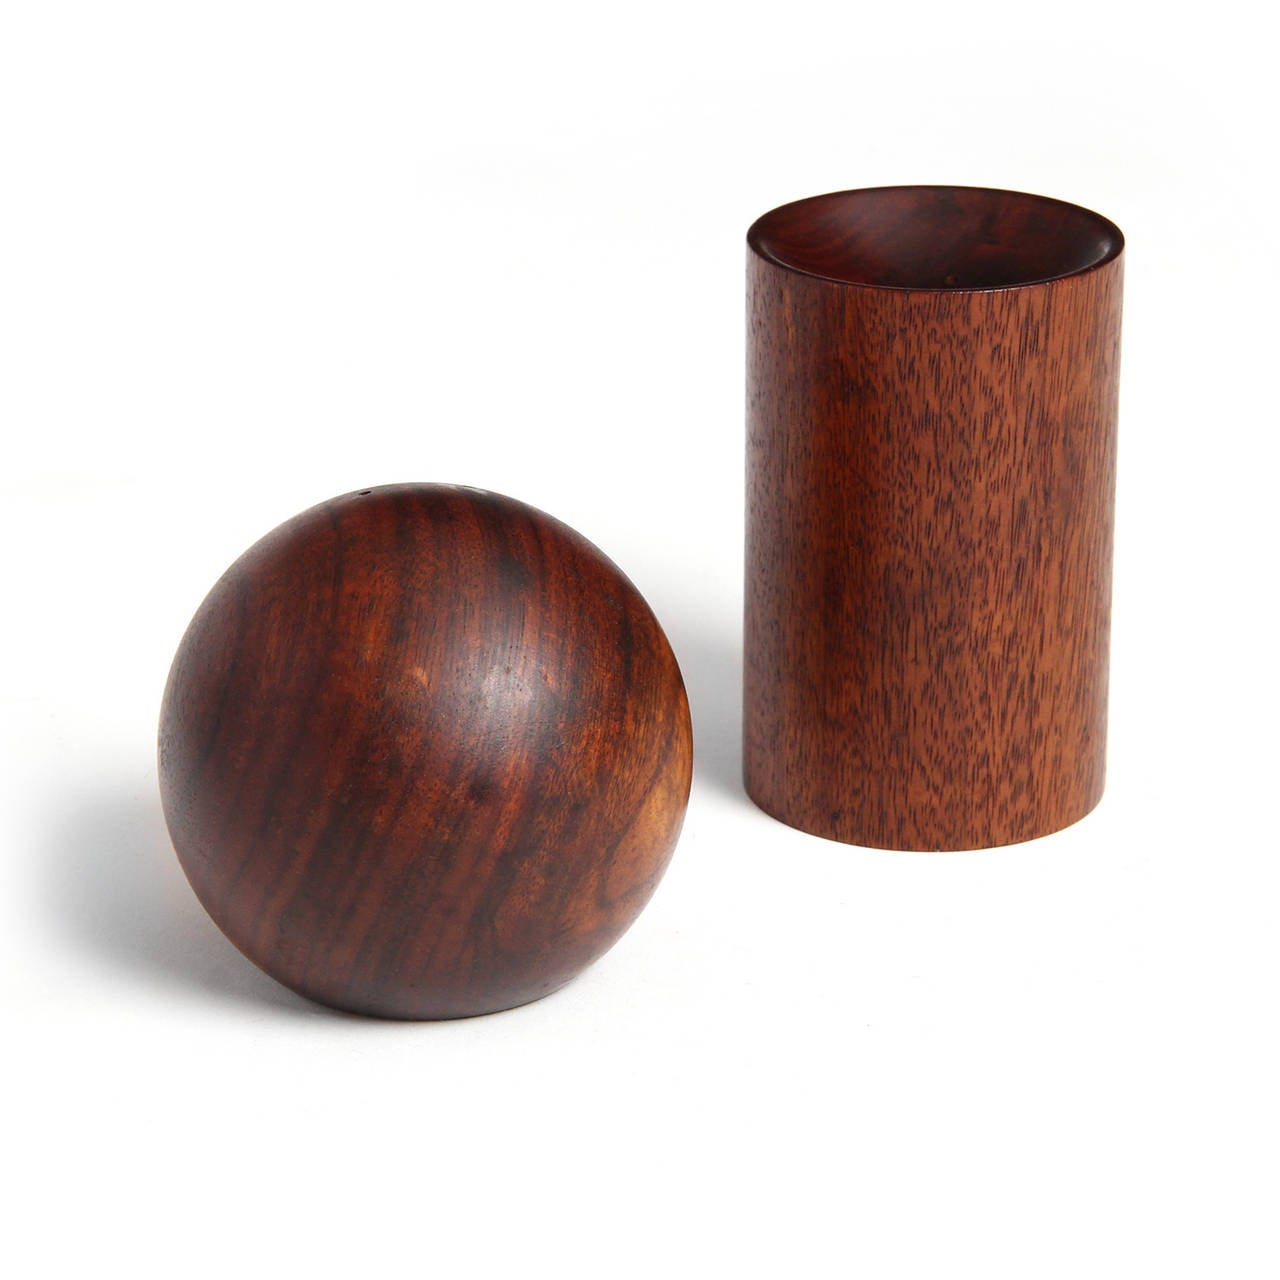 A spare and geometric nesting salt and pepper shakers having the form of a circle and a cylinder perfectly executed in richly figured solid teak.